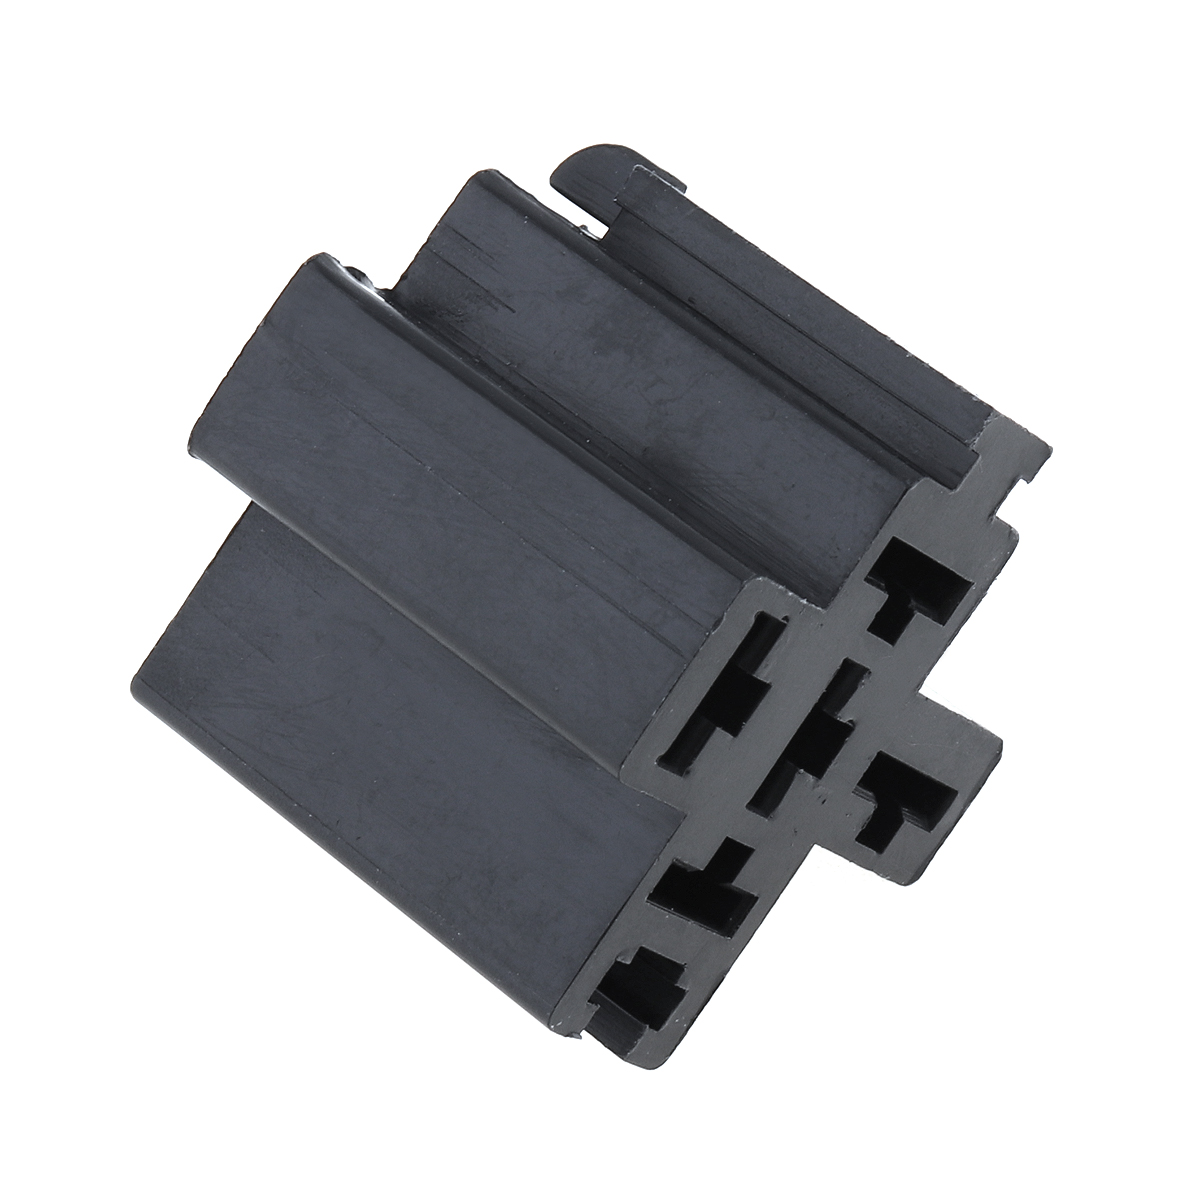 6-3mm-Car-Vehicle-5-Pin-Relay-Socket-Connector-Holder-with-5pcs-Copper-Terminal thumbnail 4